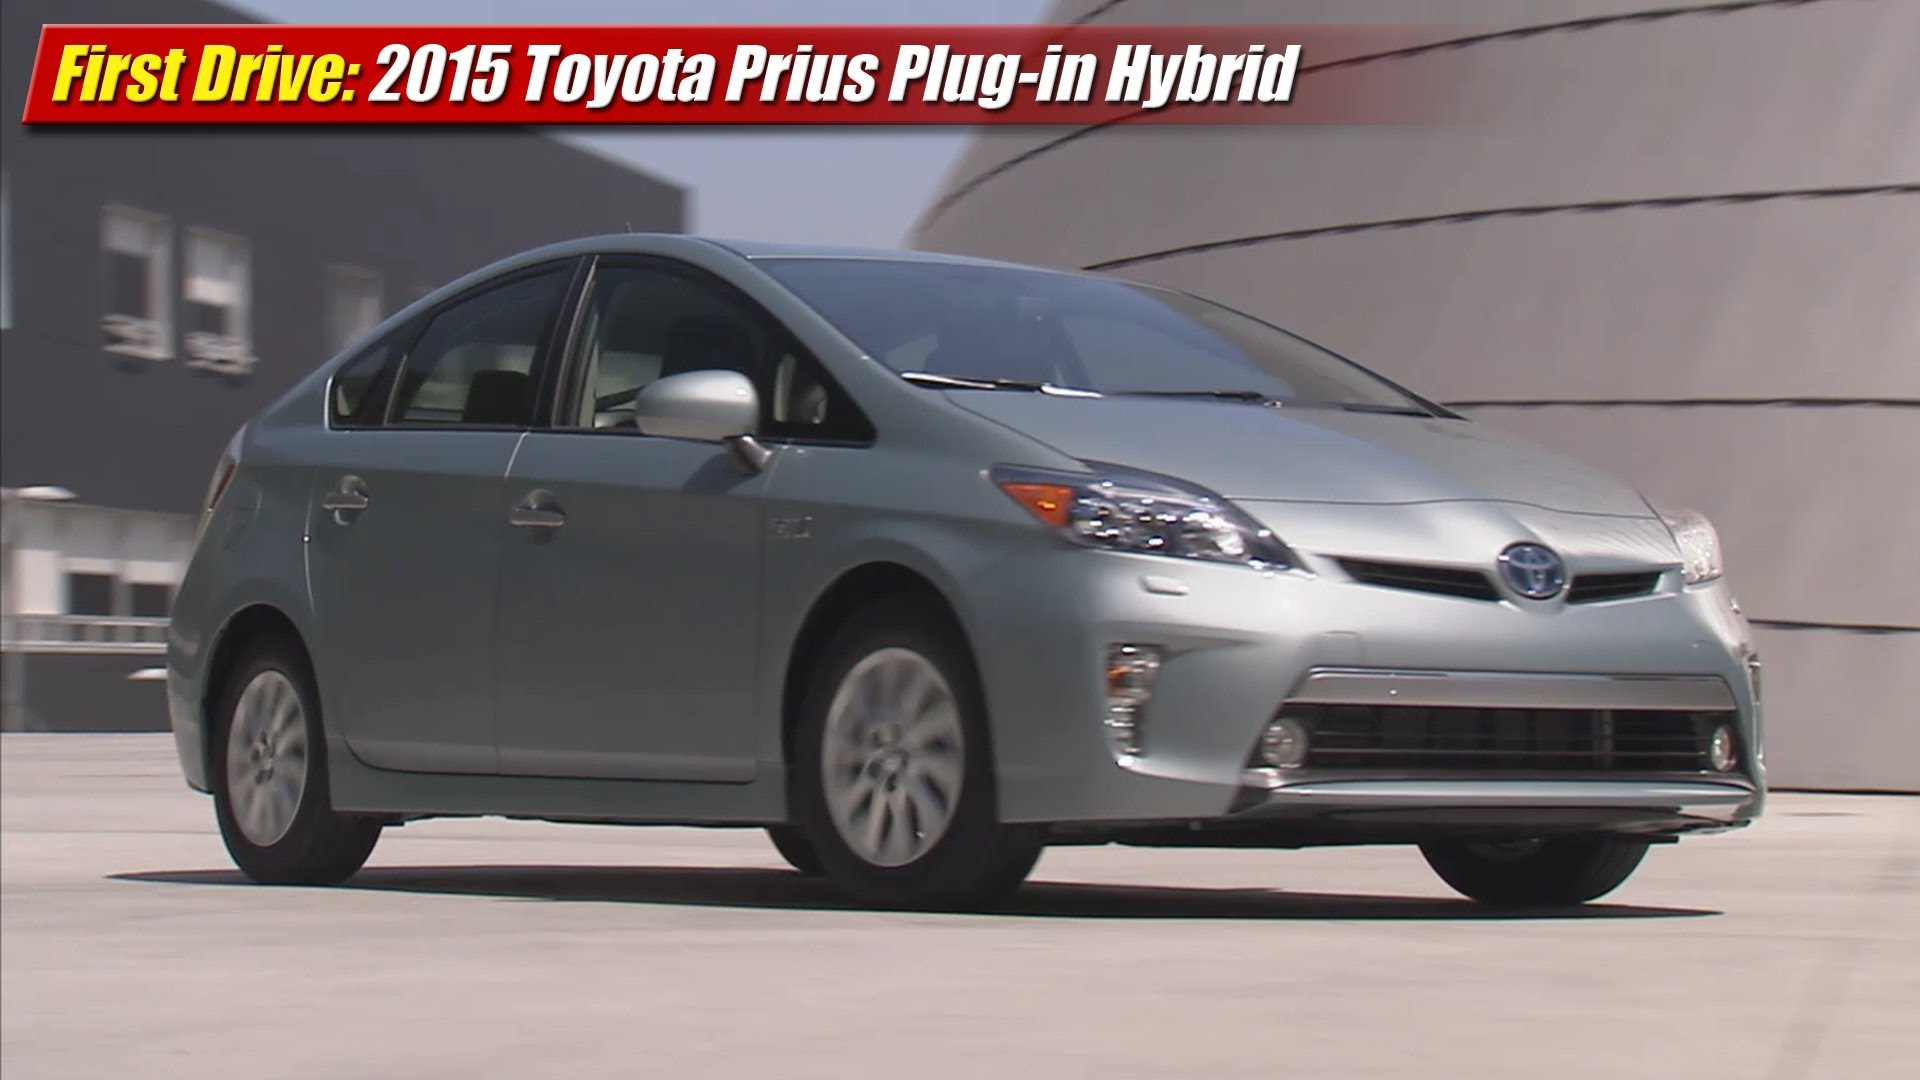 first drive 2015 toyota prius plug in hybrid testdriven tv. Black Bedroom Furniture Sets. Home Design Ideas